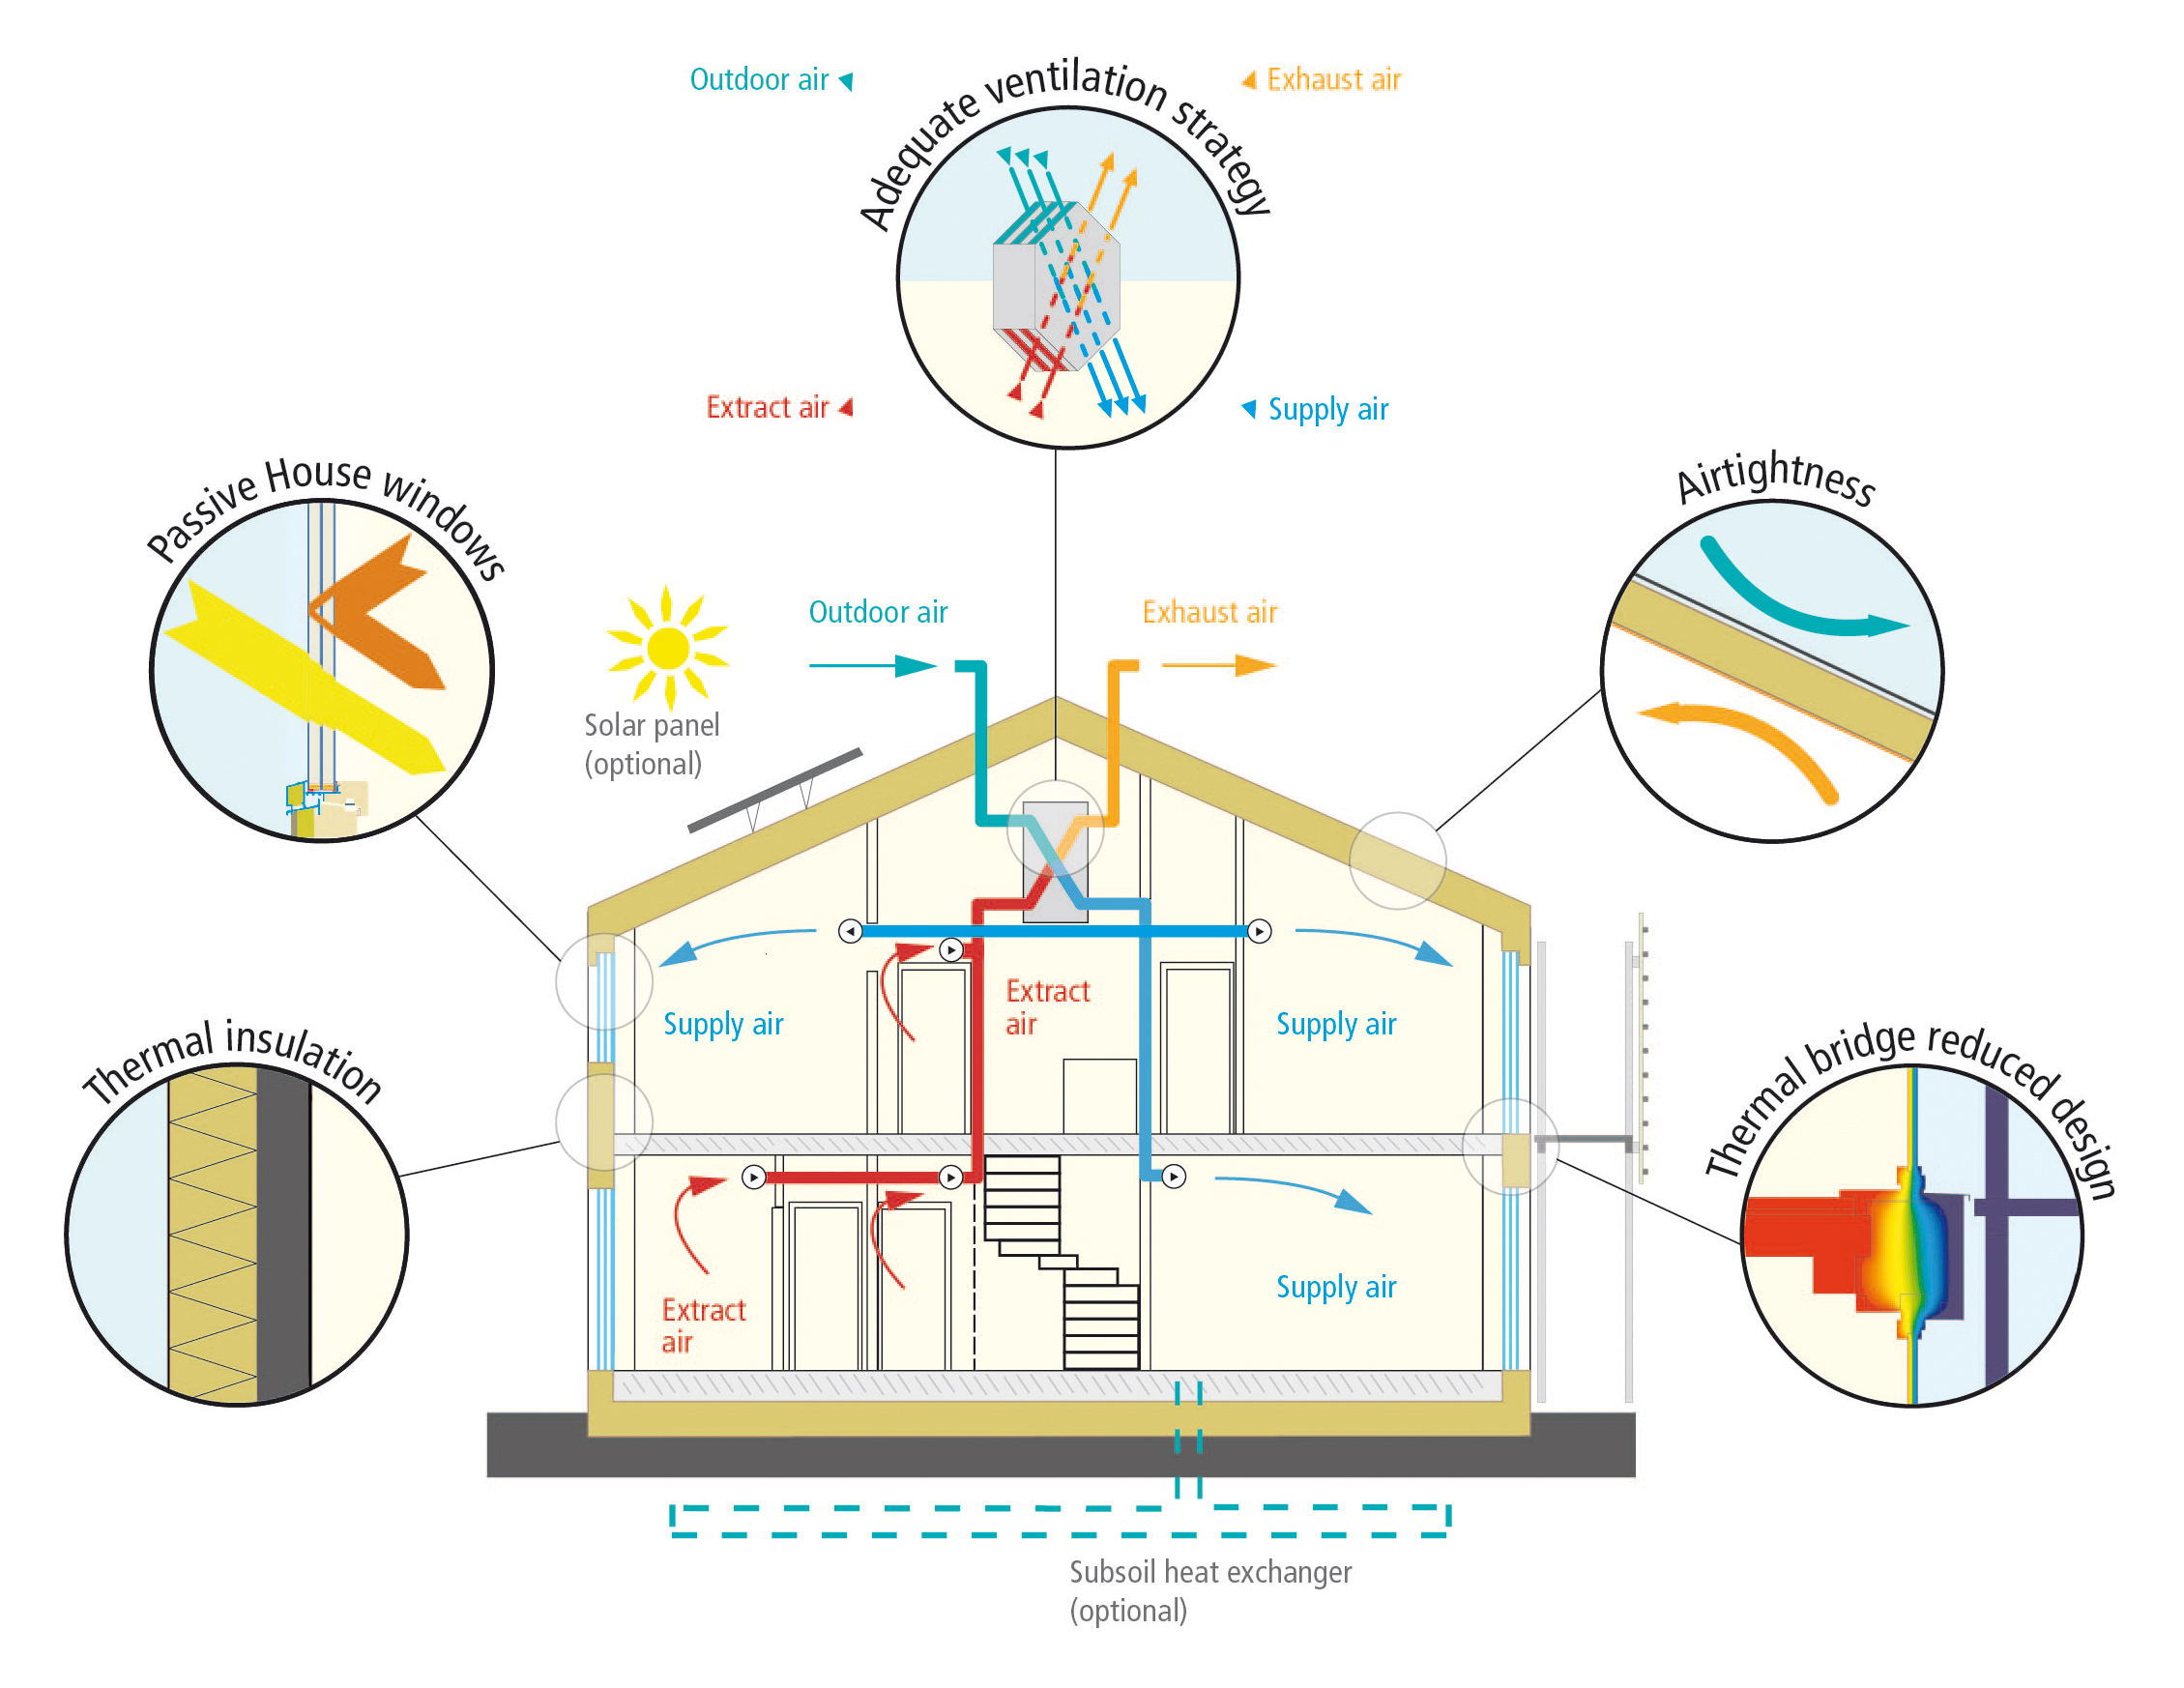 Passivhaus institut all opaque building components of the exterior envelope of the house must be very well insulated for most cool termperate climates this means a heat ccuart Choice Image